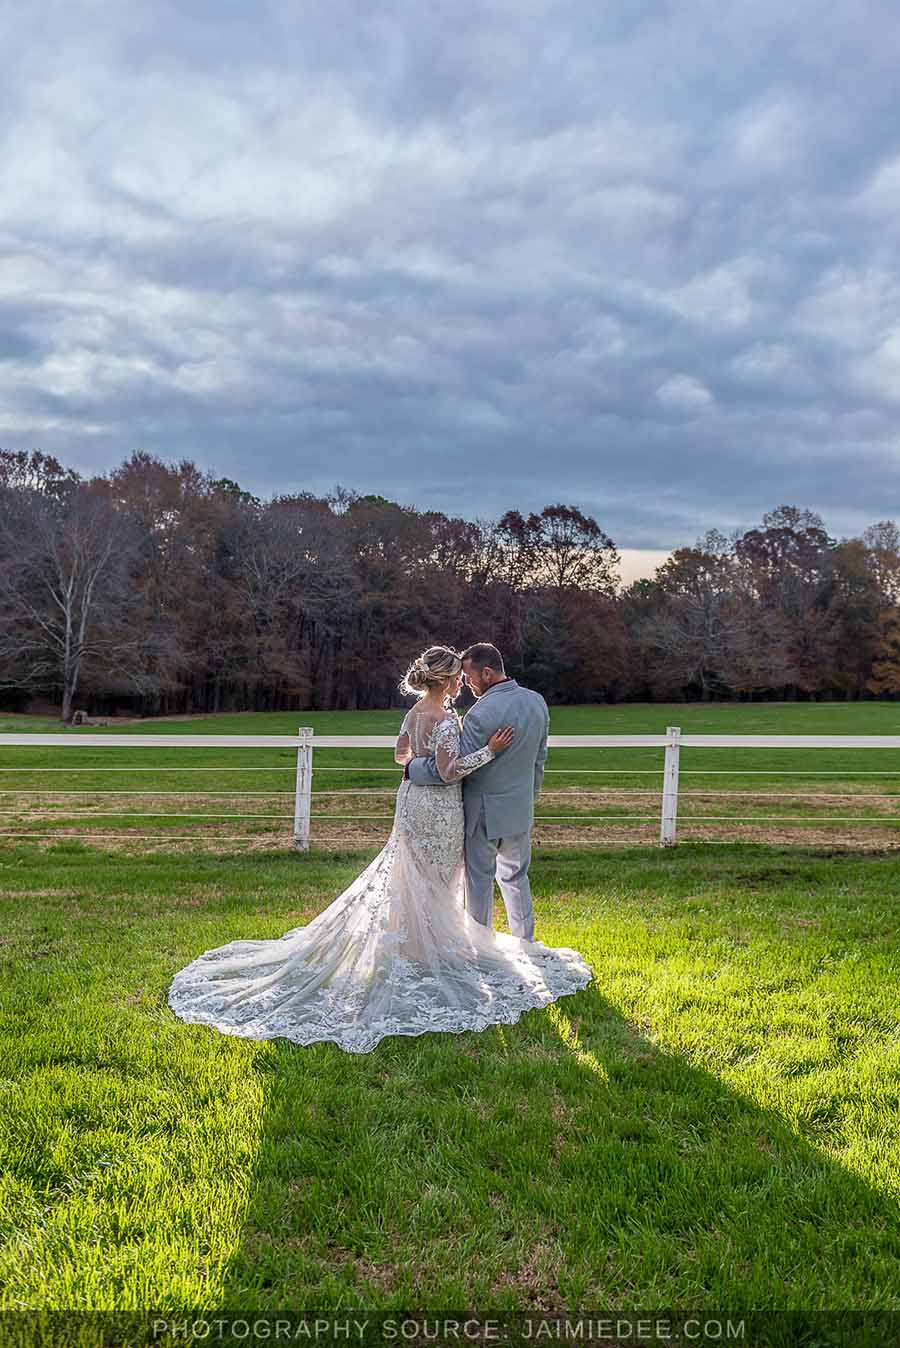 Wedding Photography Contact Compressed